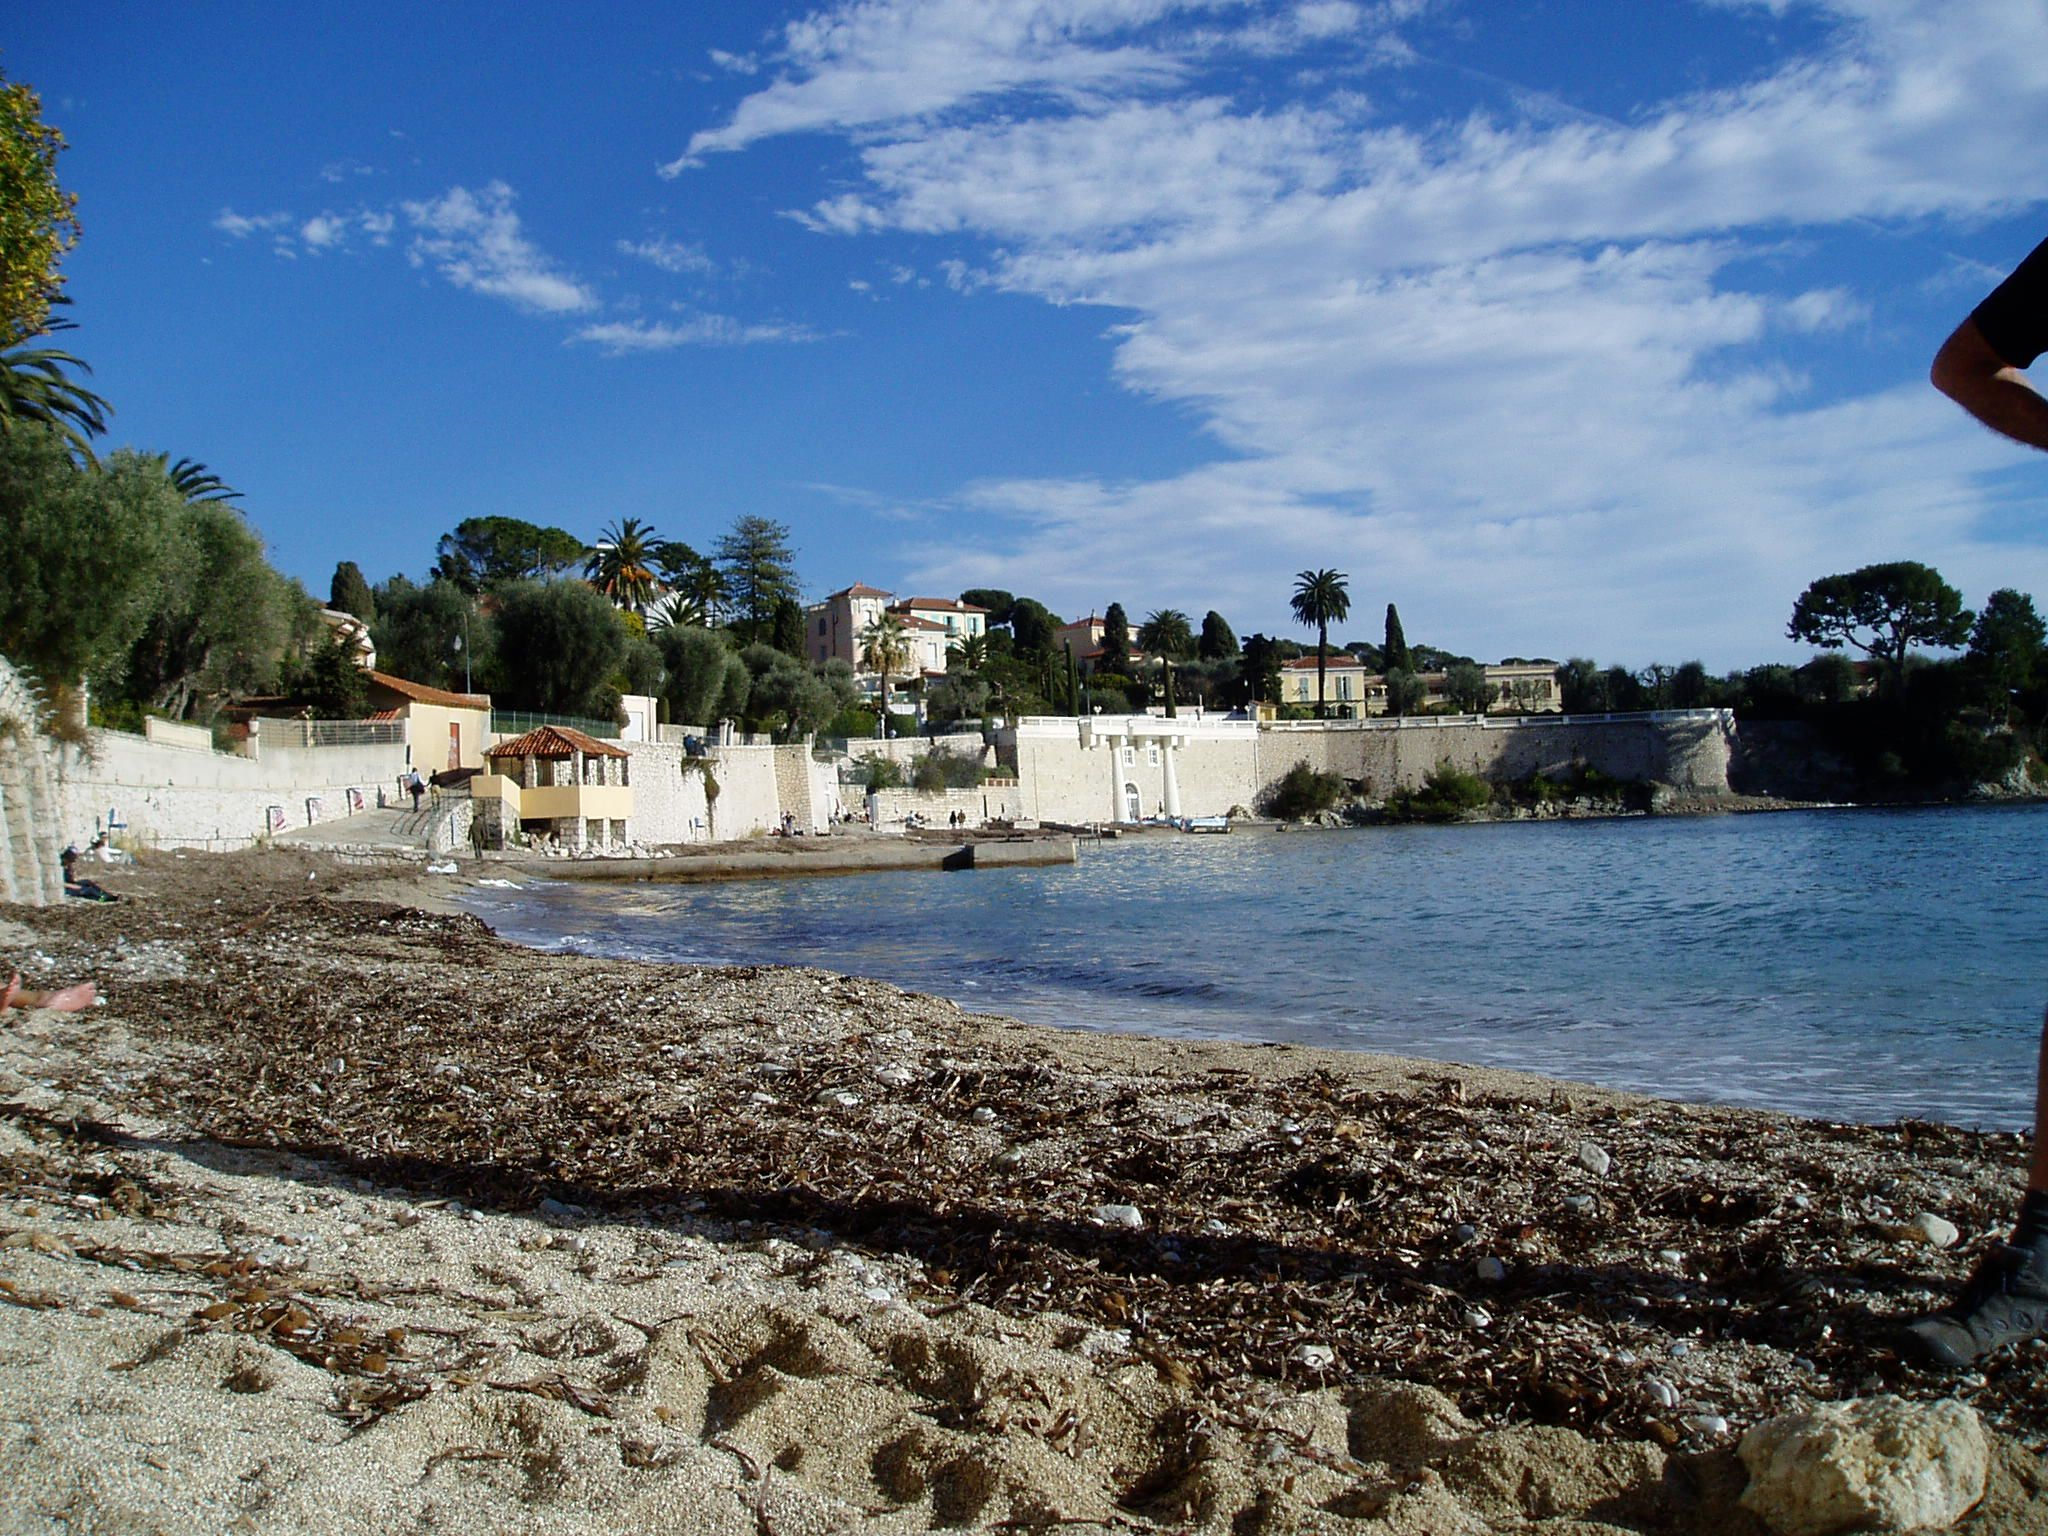 Beaulieu, Cote d'Azur, cute little beach where I want to have my ashes scattered!